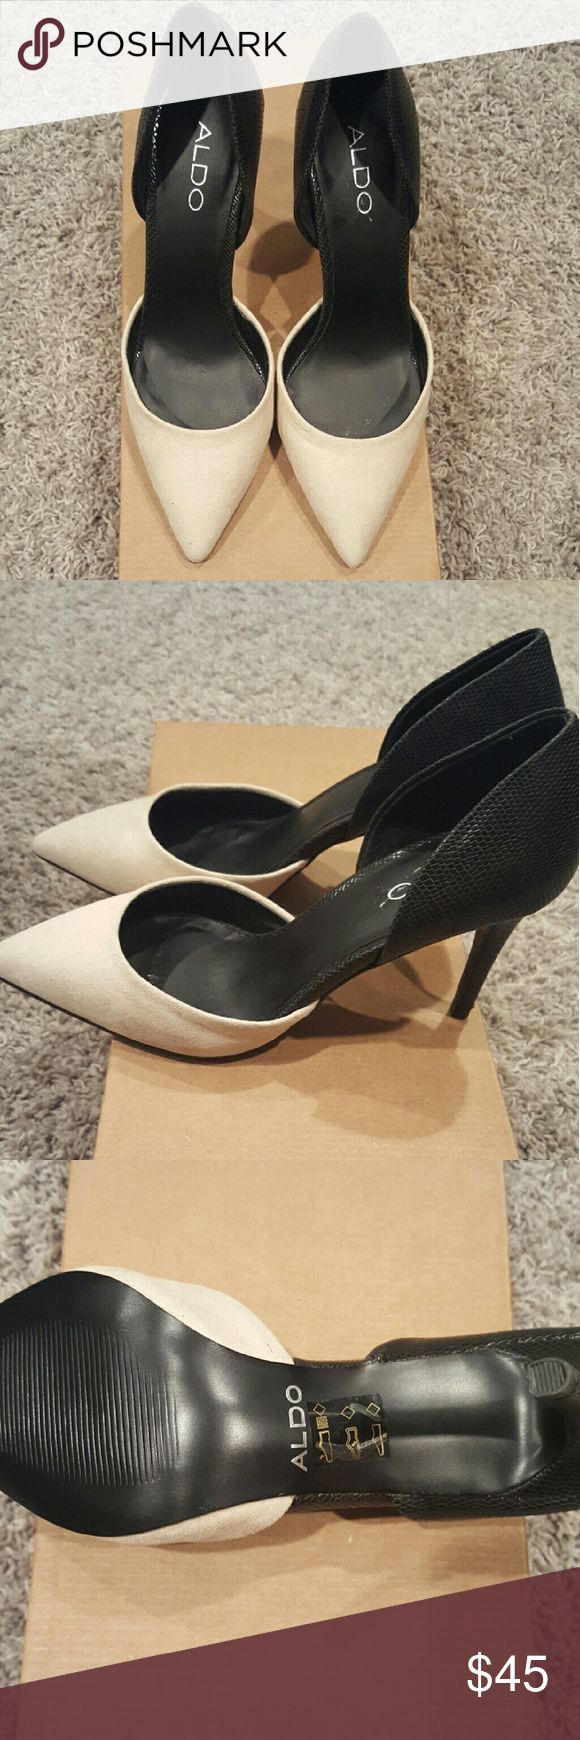 1 hour reduced shipping! Aldo d'orsay pump NWOT Half tan suede and black heels ALDO Shoes